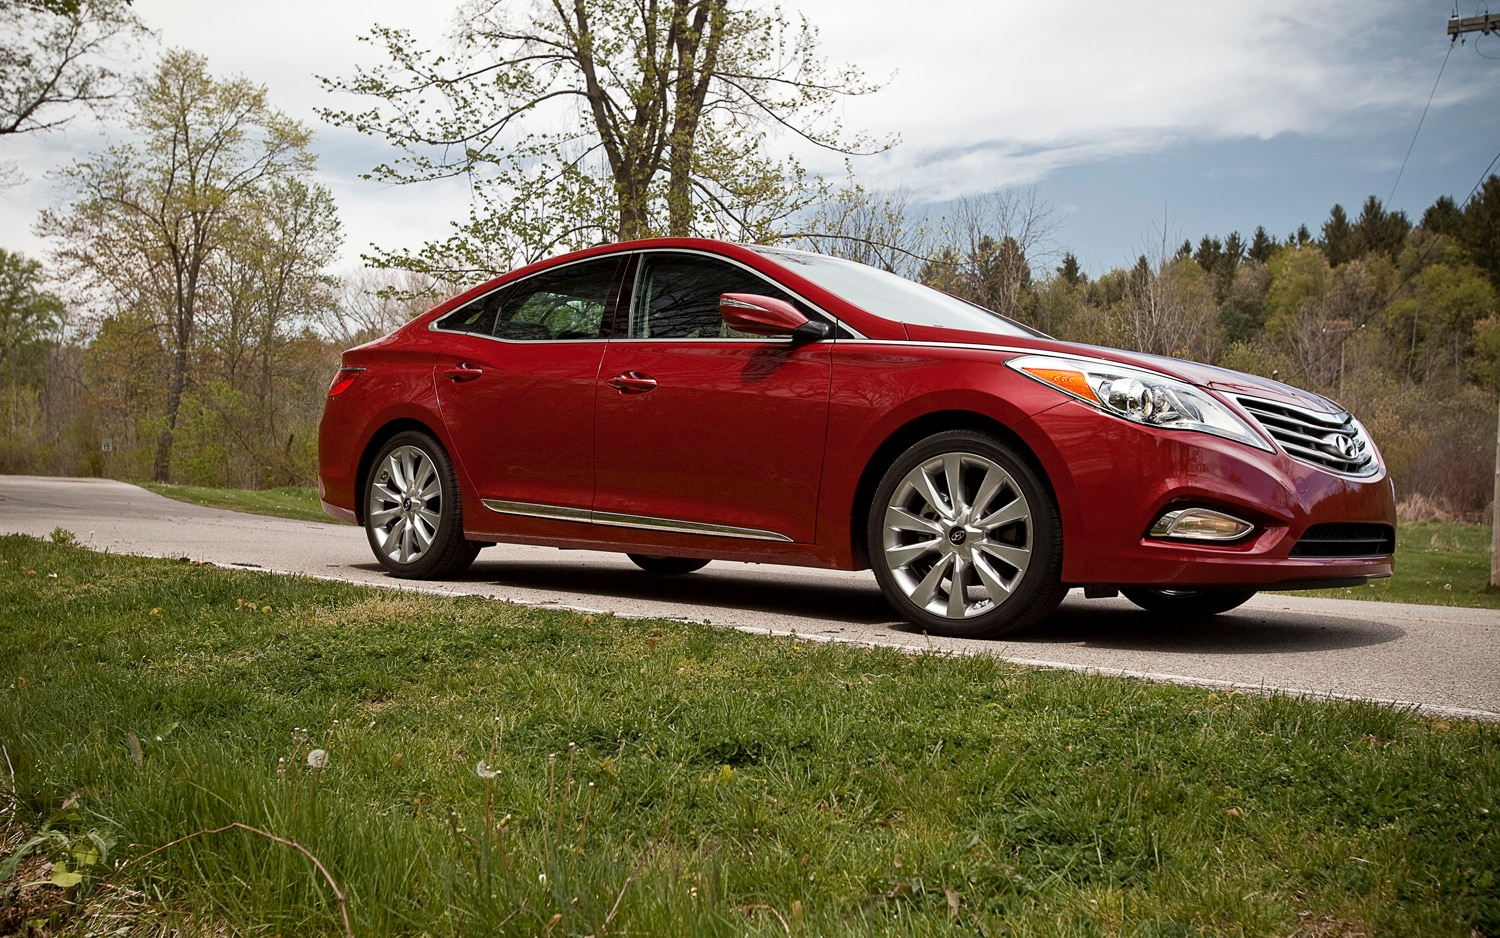 2012 Hyundai Azera Front Right Side View1